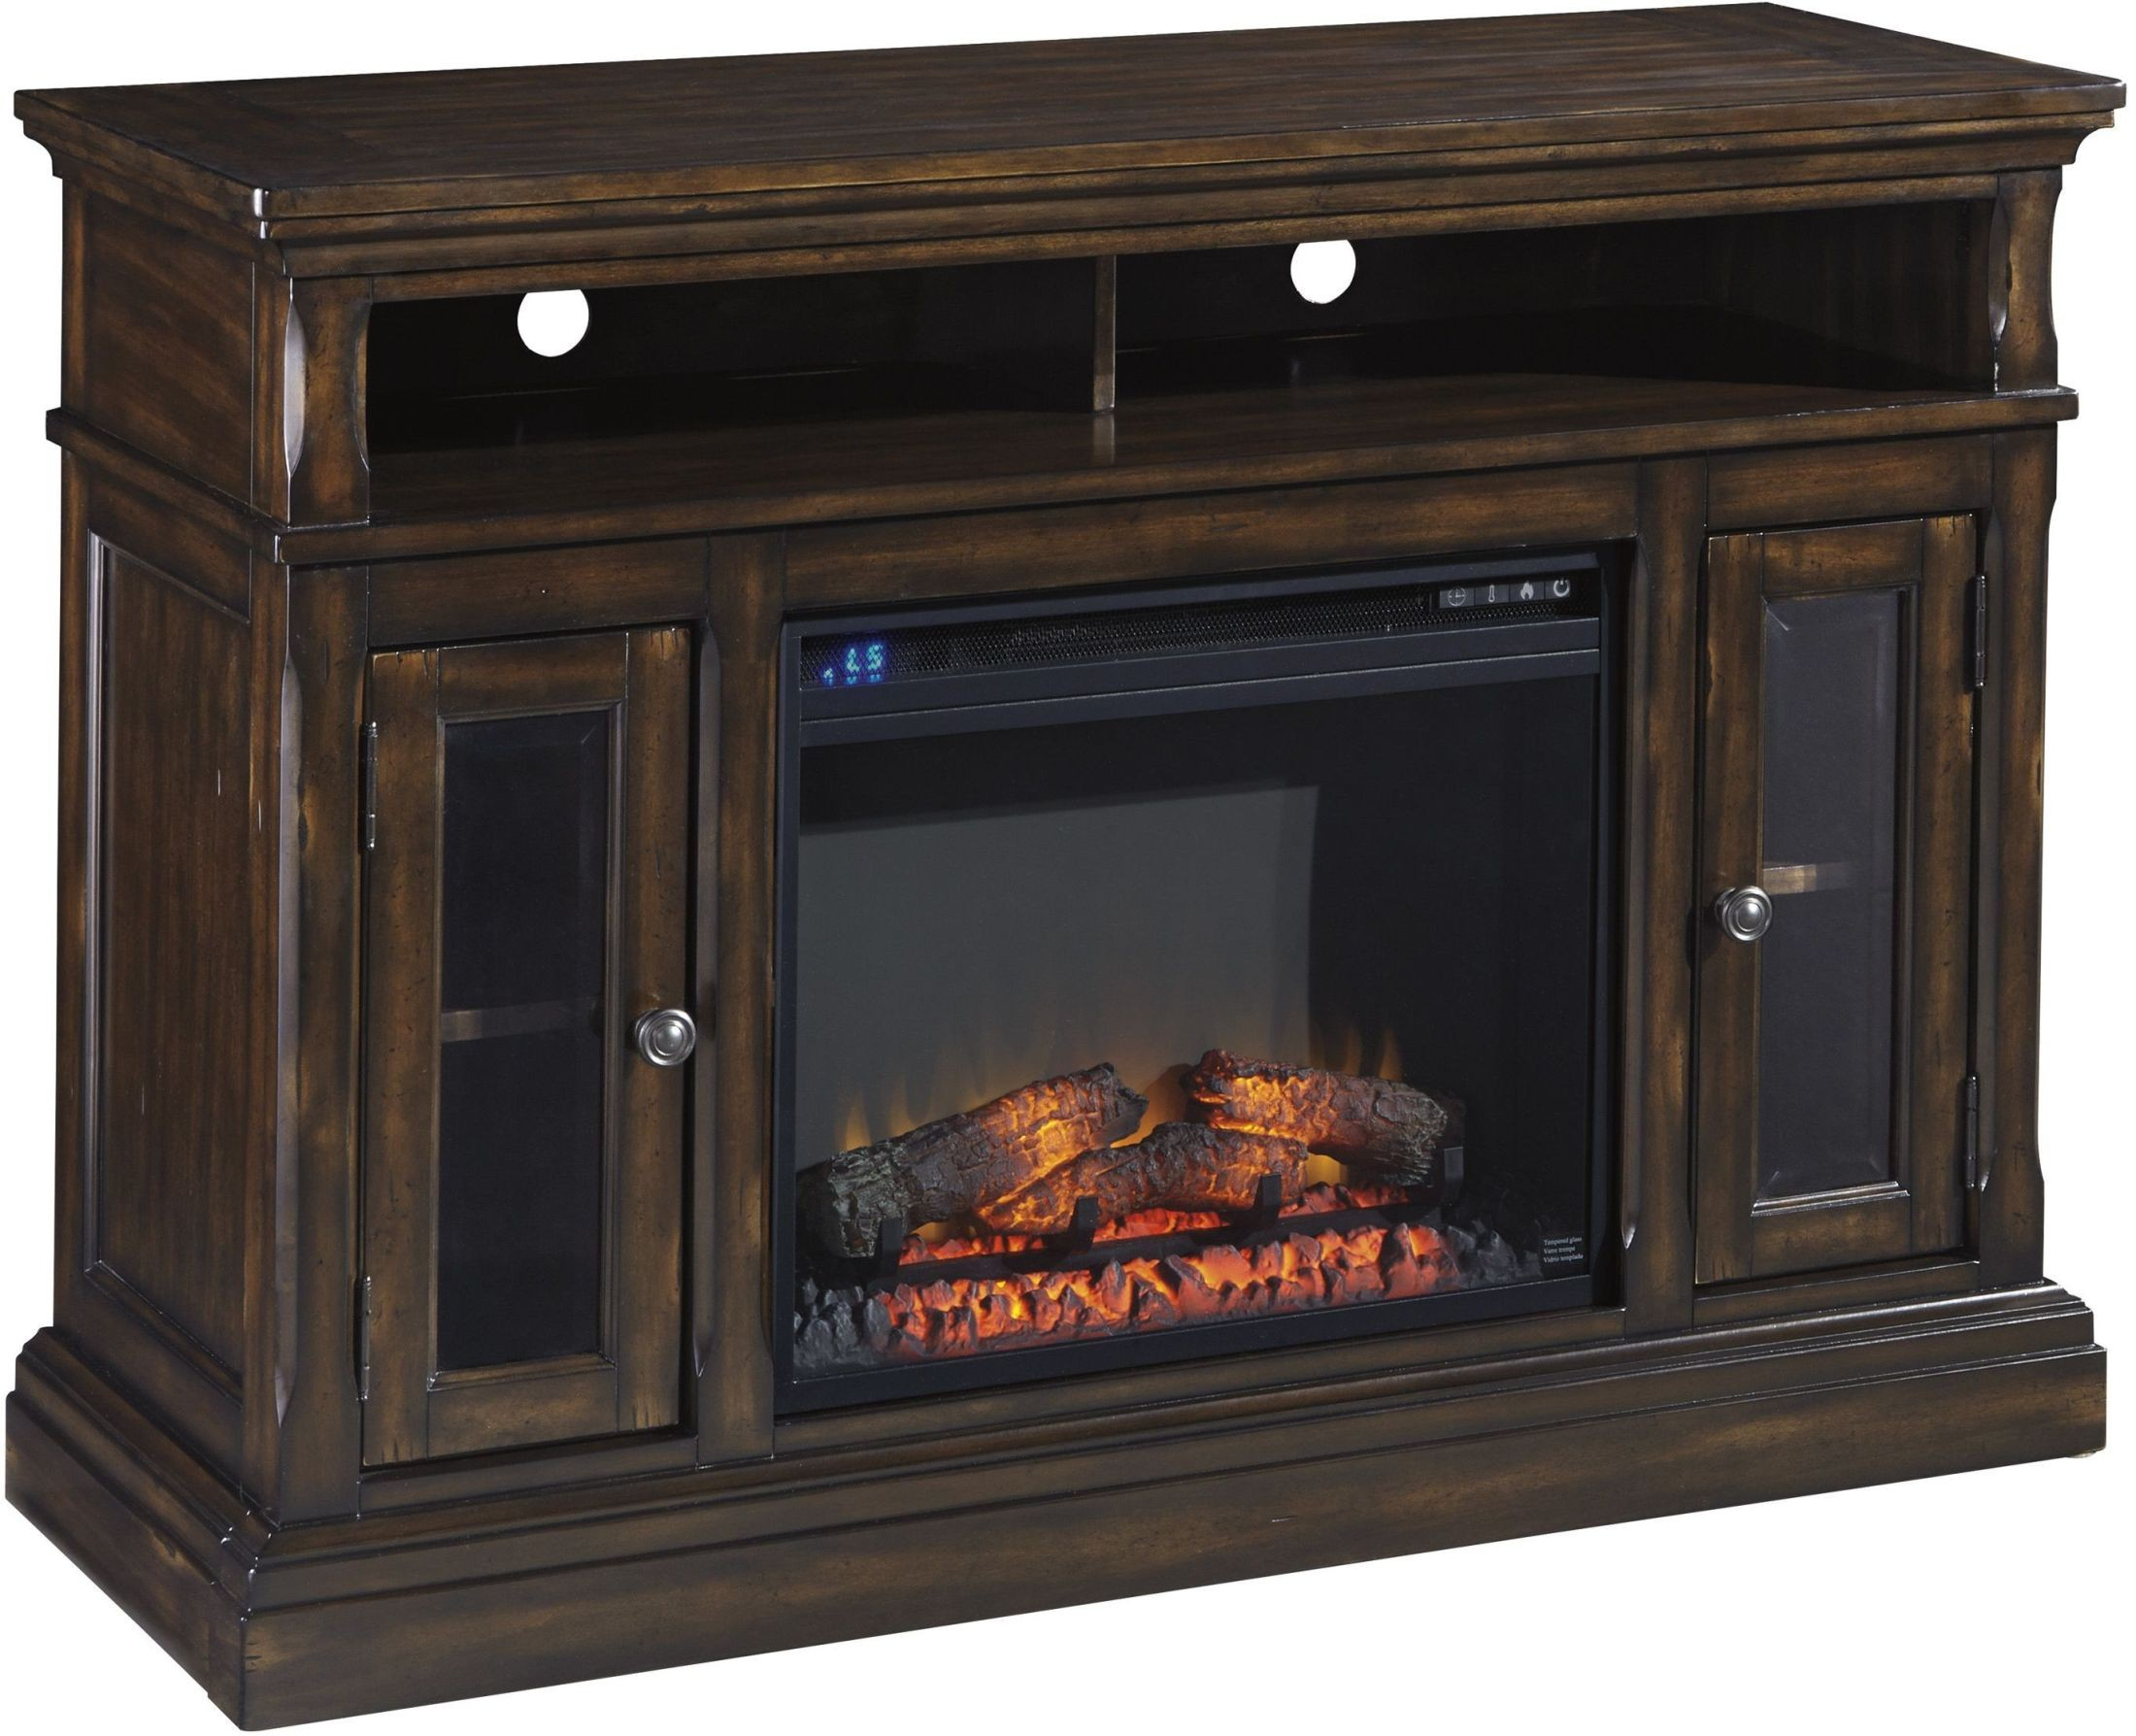 Roddinton dark brown medium tv stand with fireplace and for Fireplace options